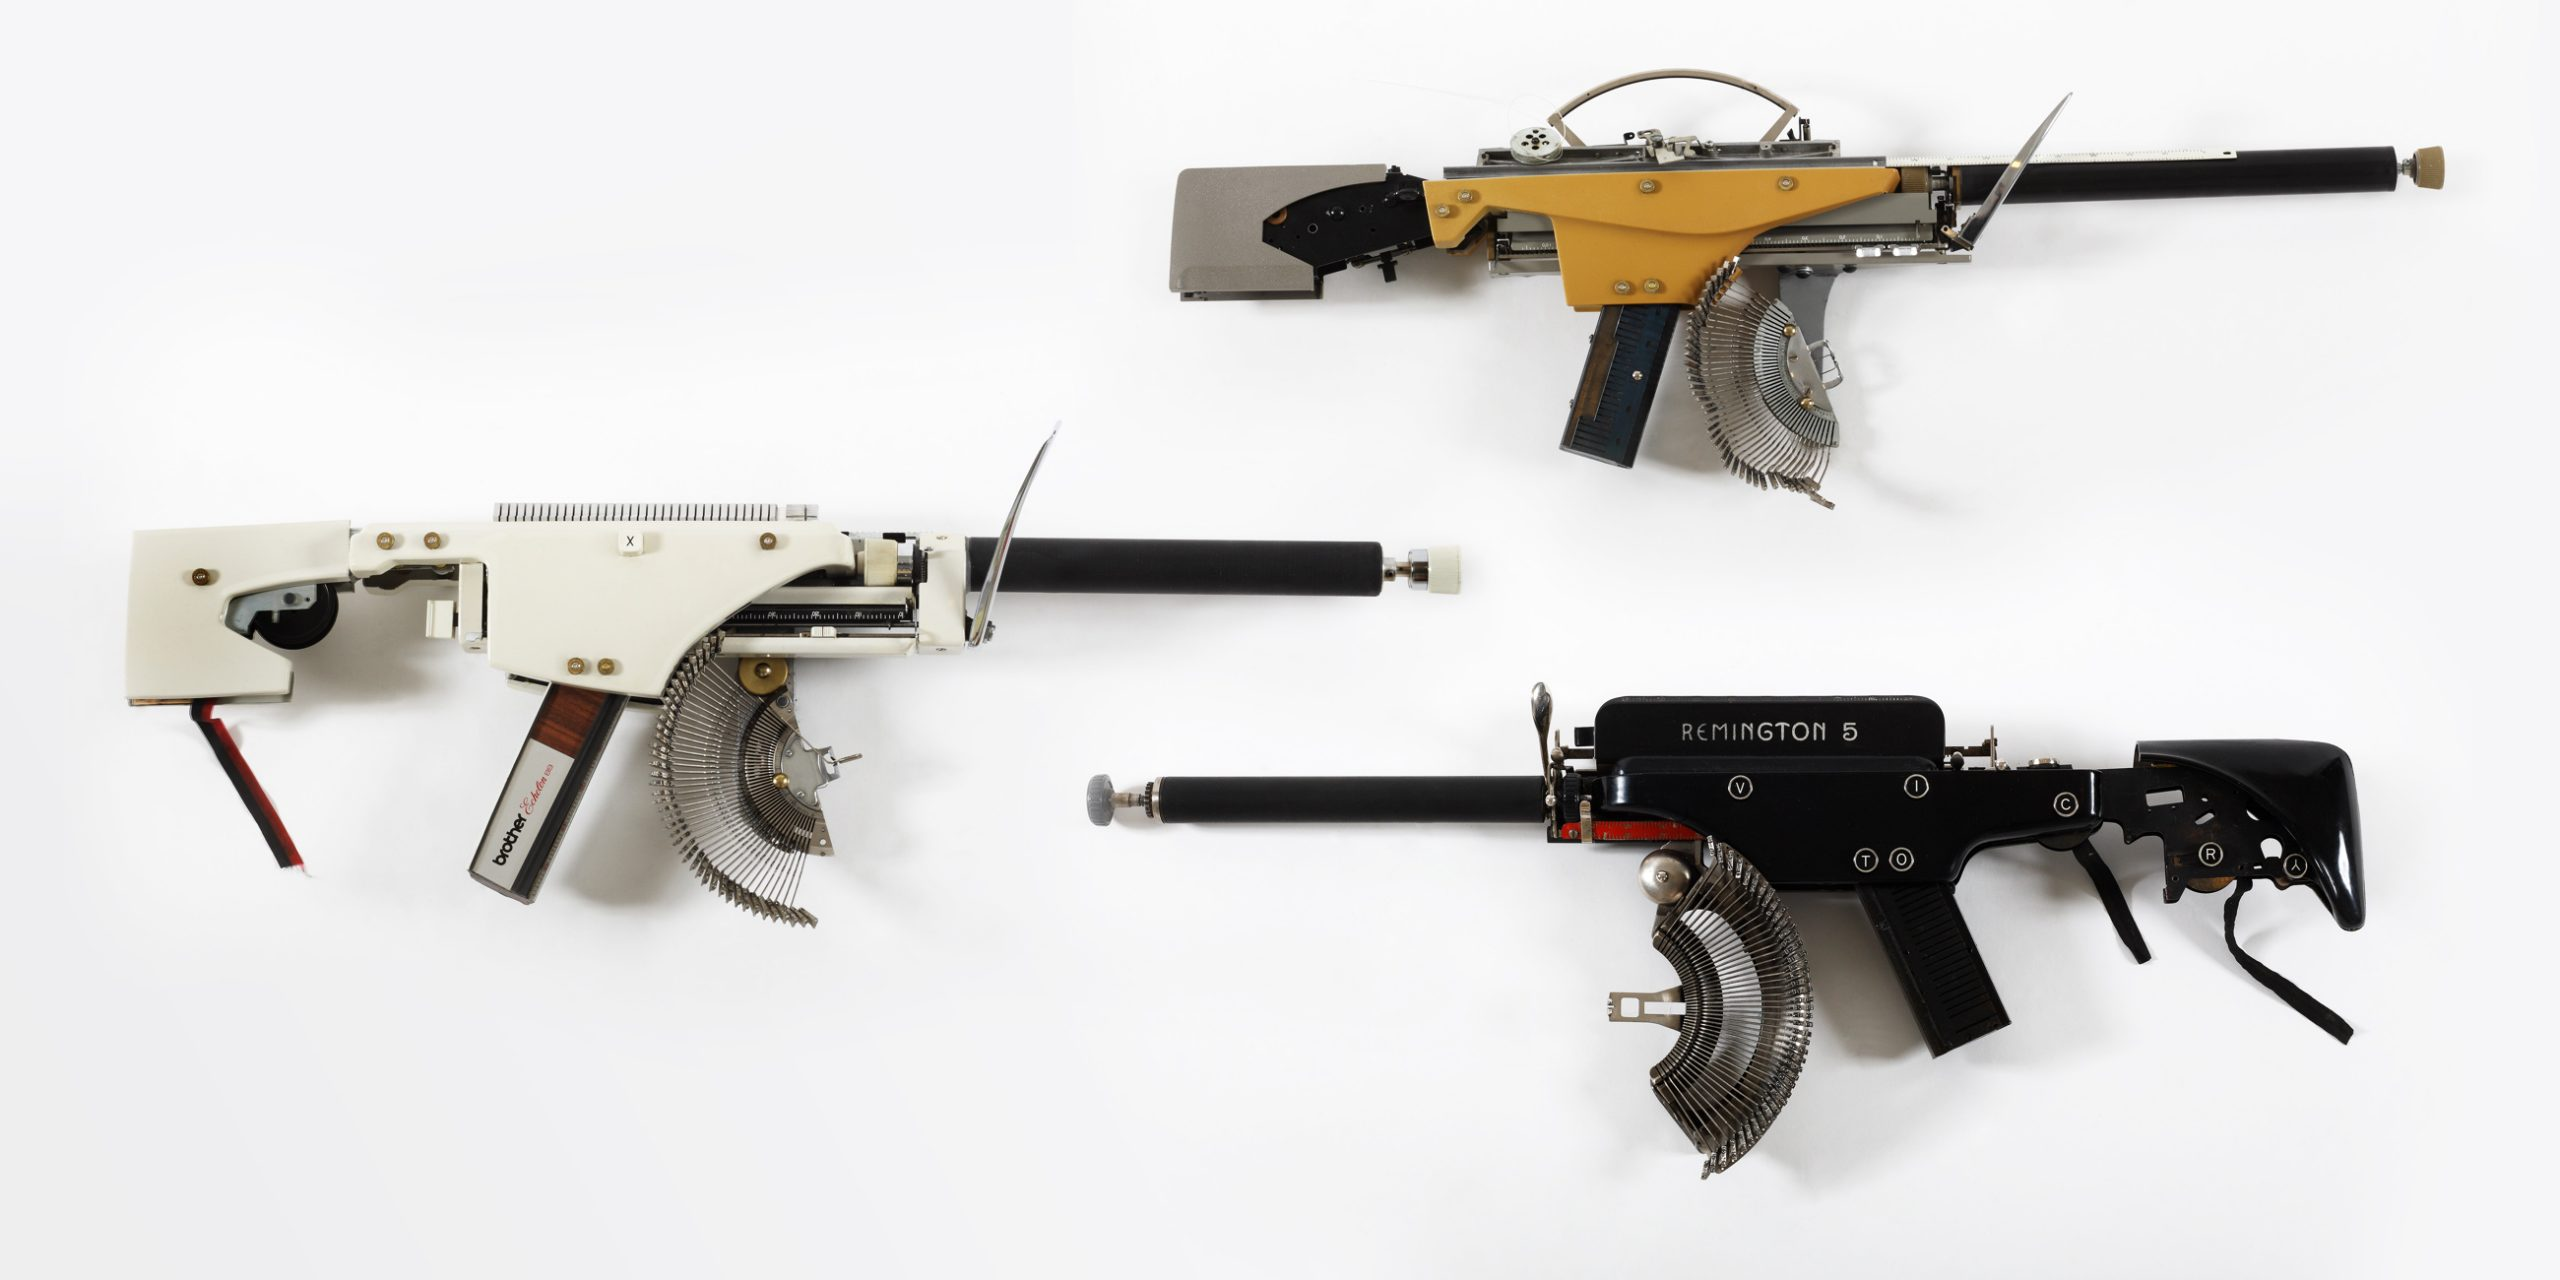 Typewriter guns